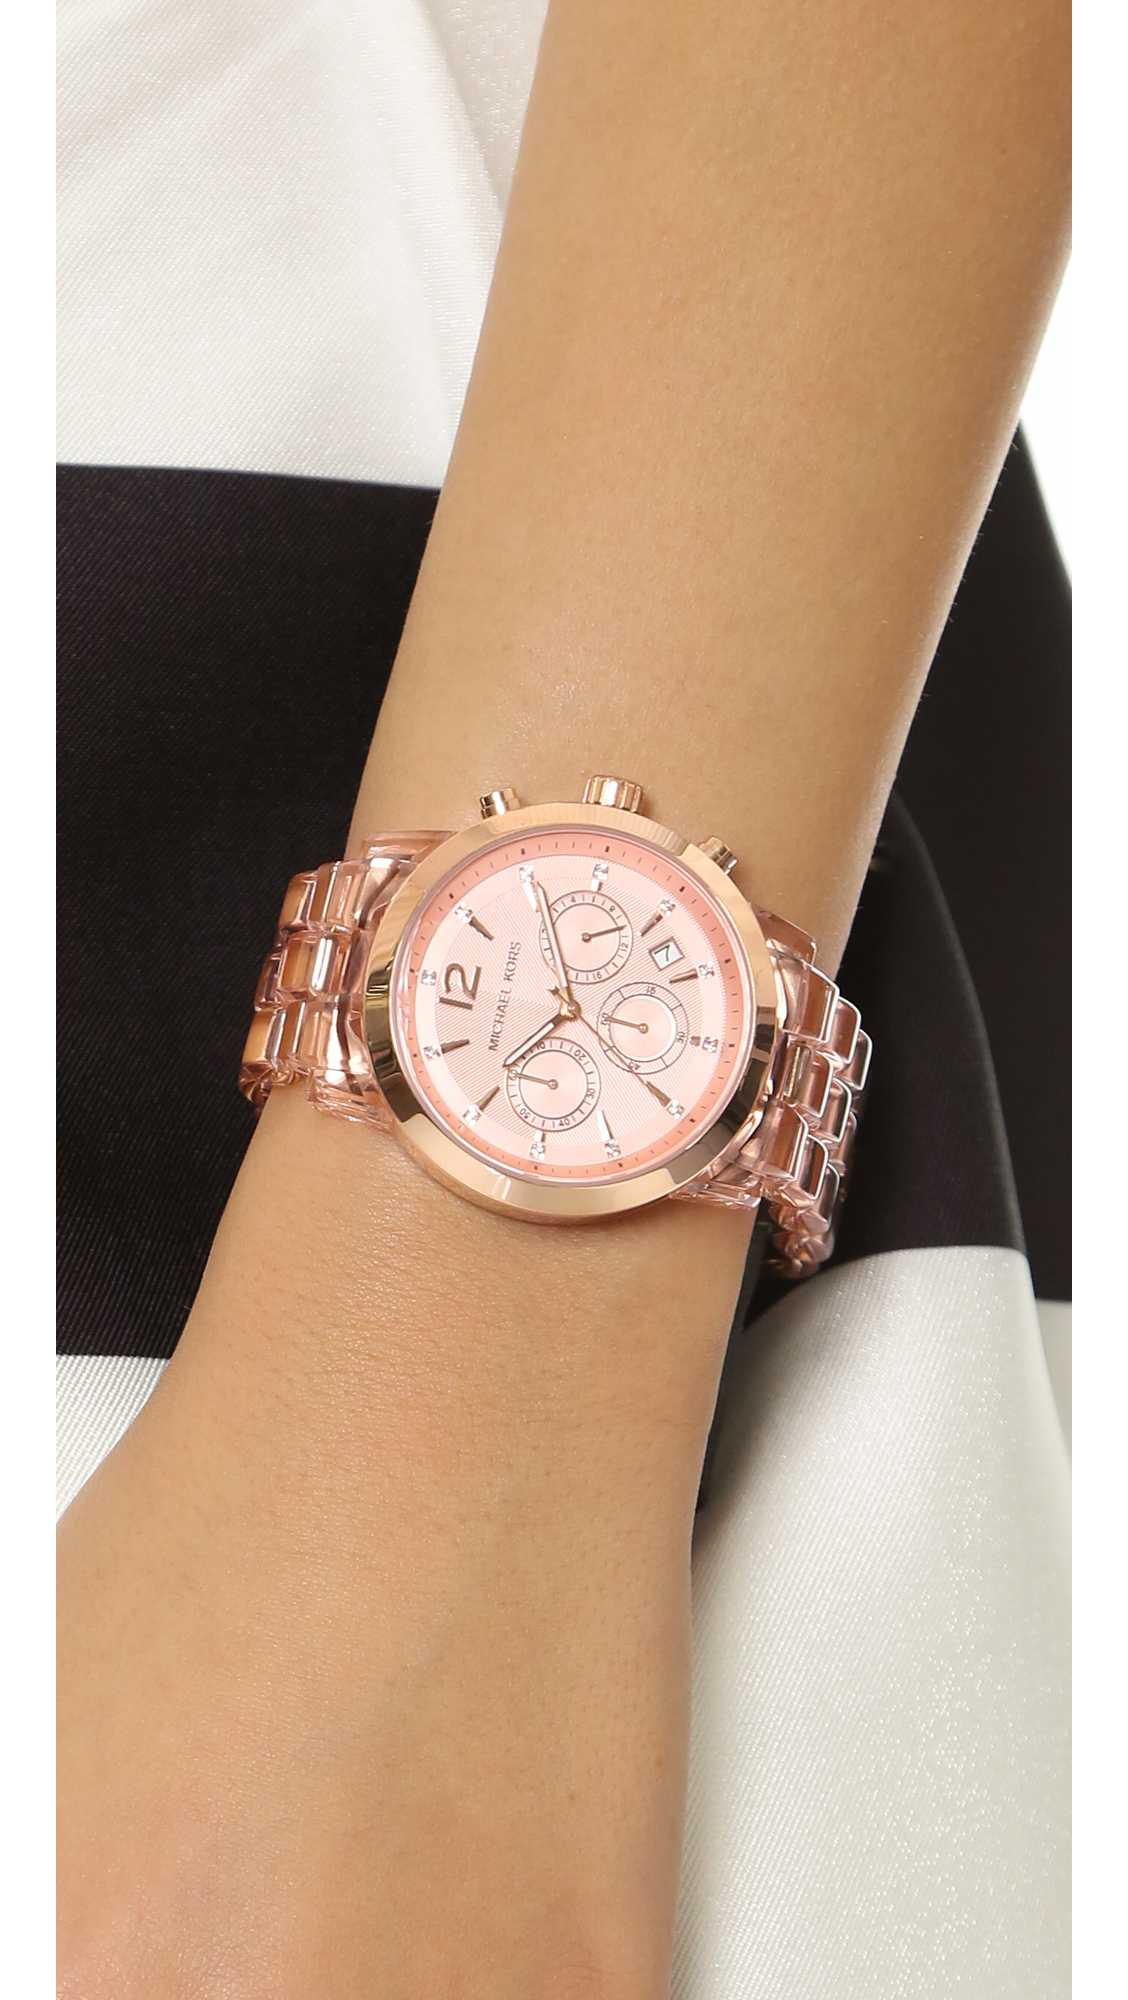 ab8307ed61a4 Gallery. Previously sold at  Shopbop · Women s Gold Watches